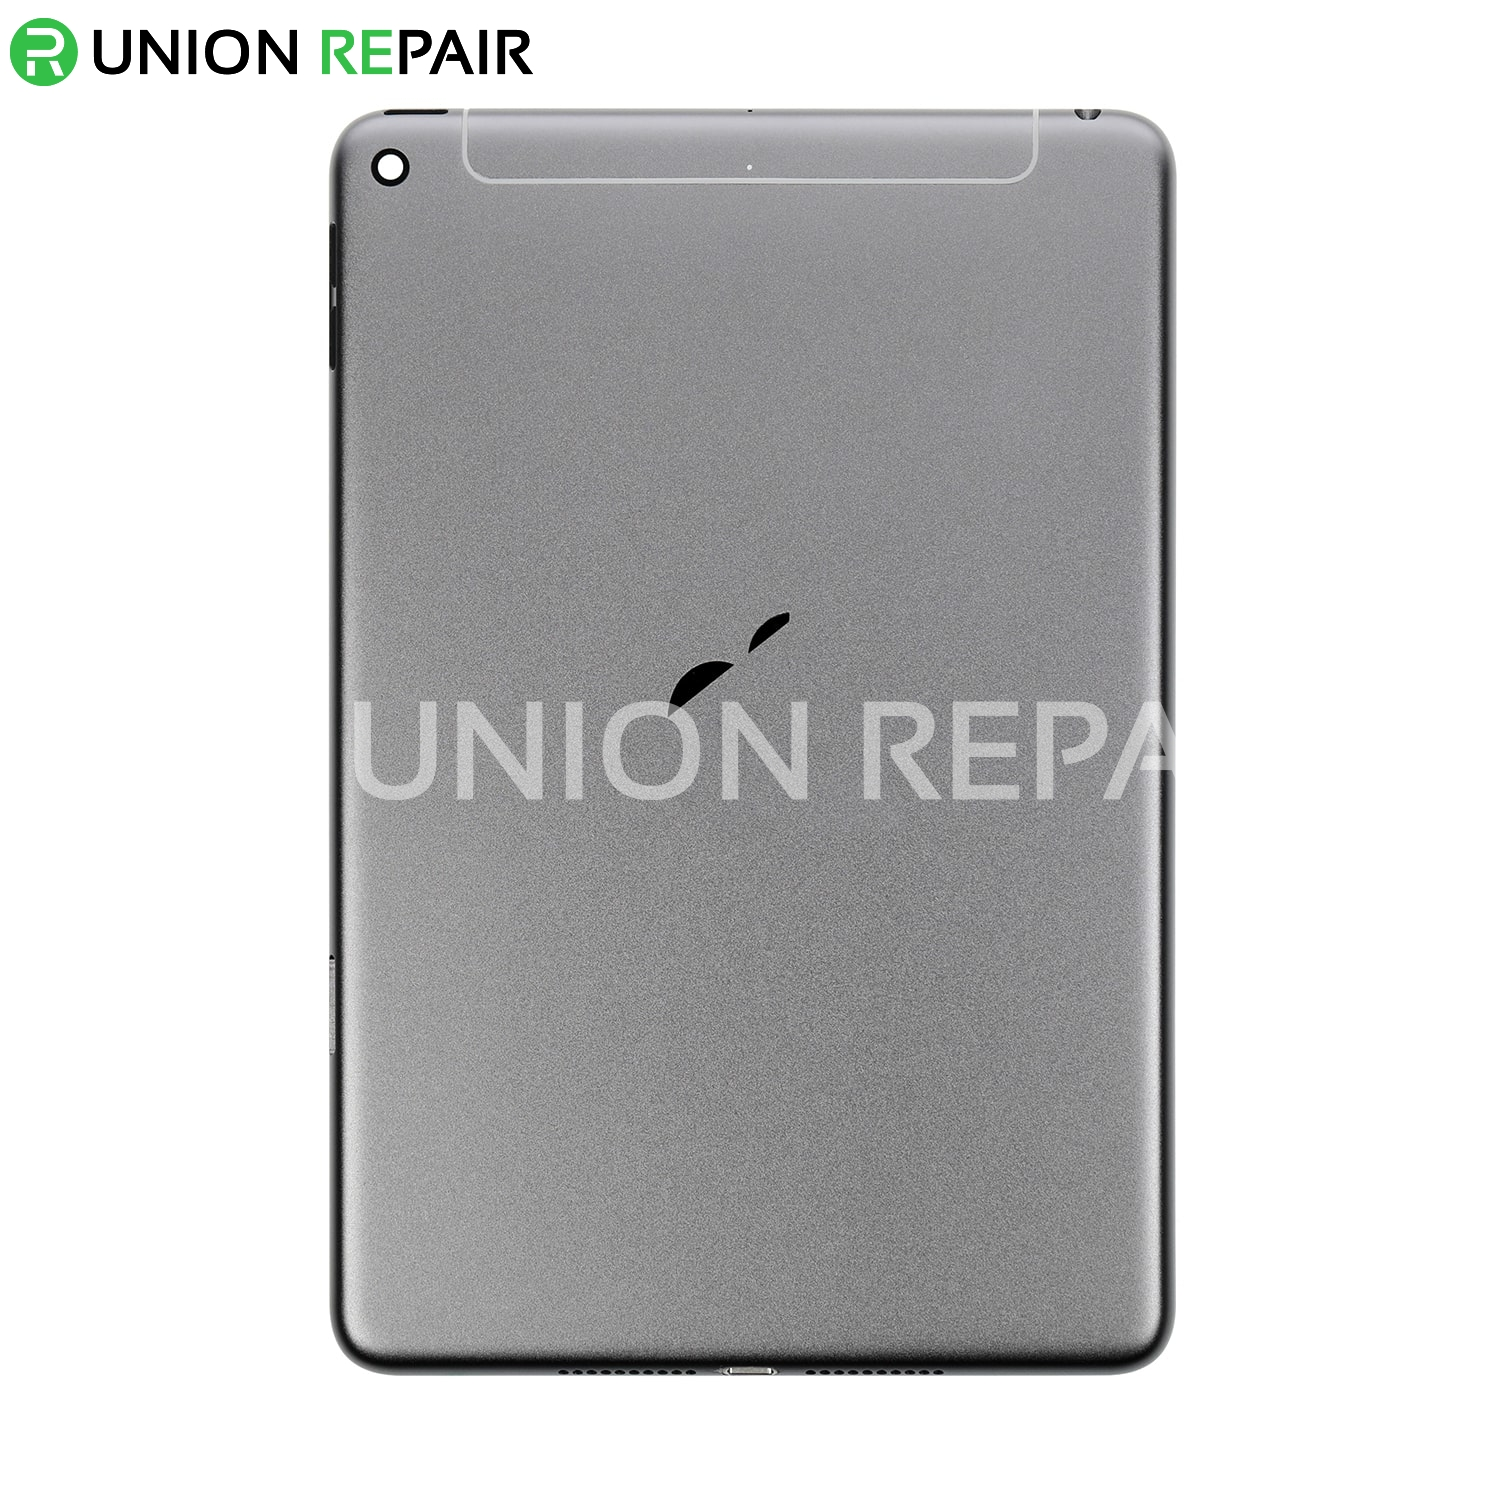 Replacement for iPad Mini 5 WiFi+Cellular Back Cover - Gray